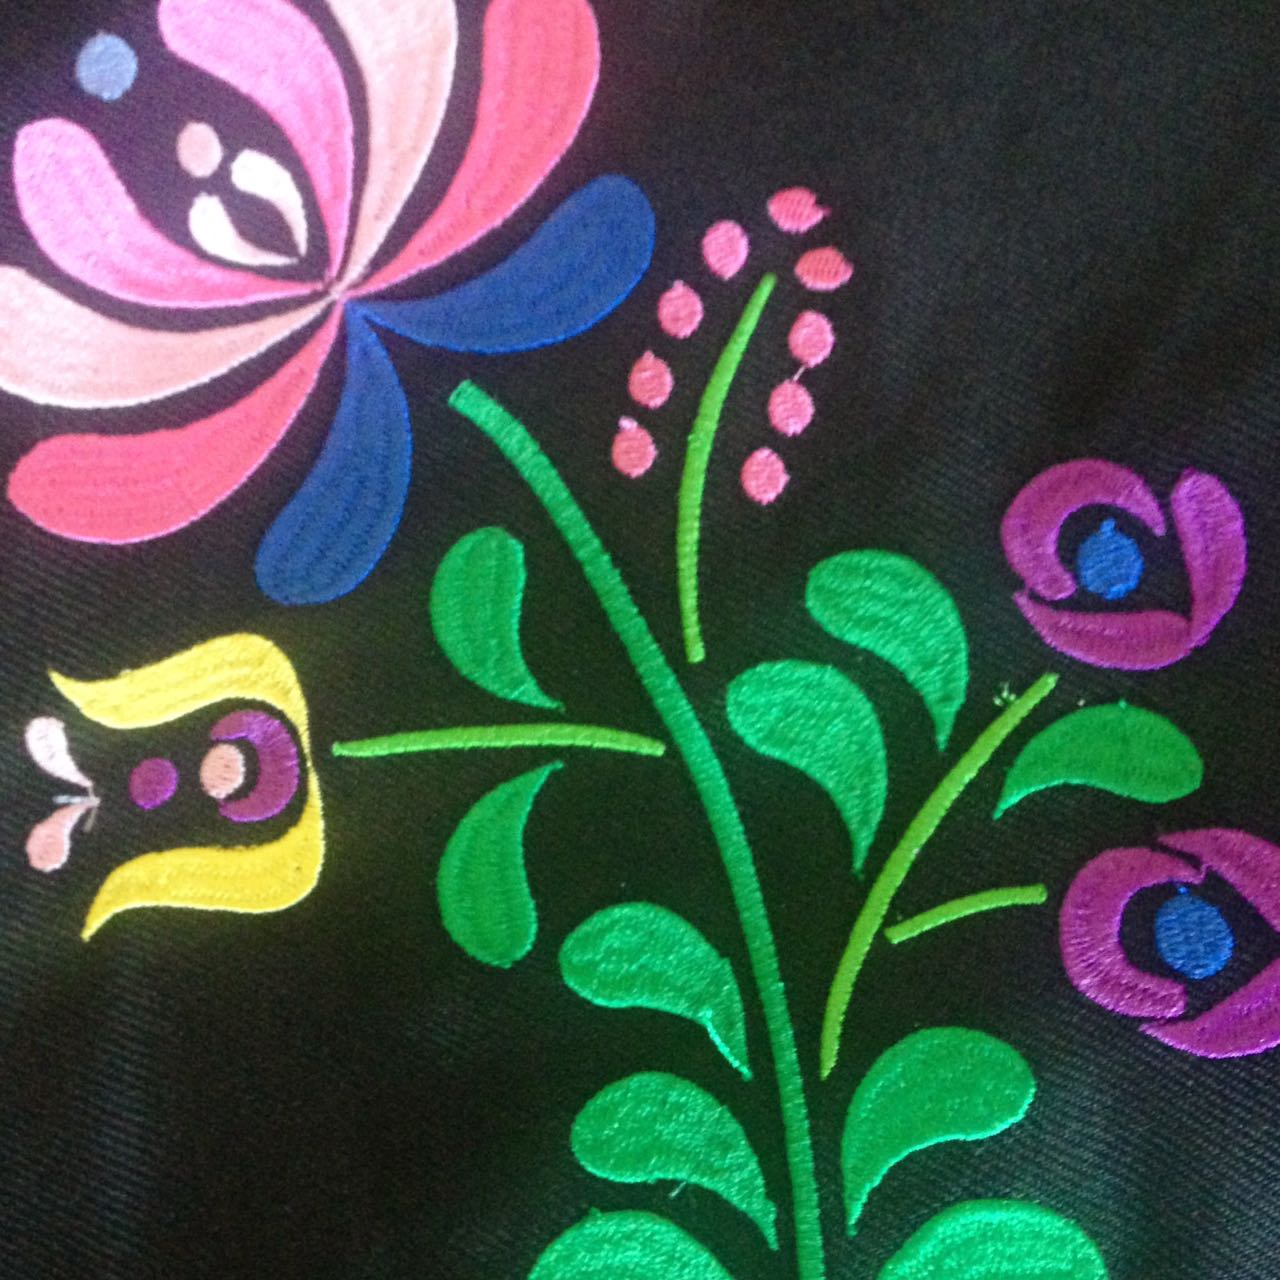 Flower JAZ embroidery design, 179 x 129.7 mm (7´ x 5´) embroidery matrix, different sizes embroidery design Embroidery matrix, Mexican design example image 5